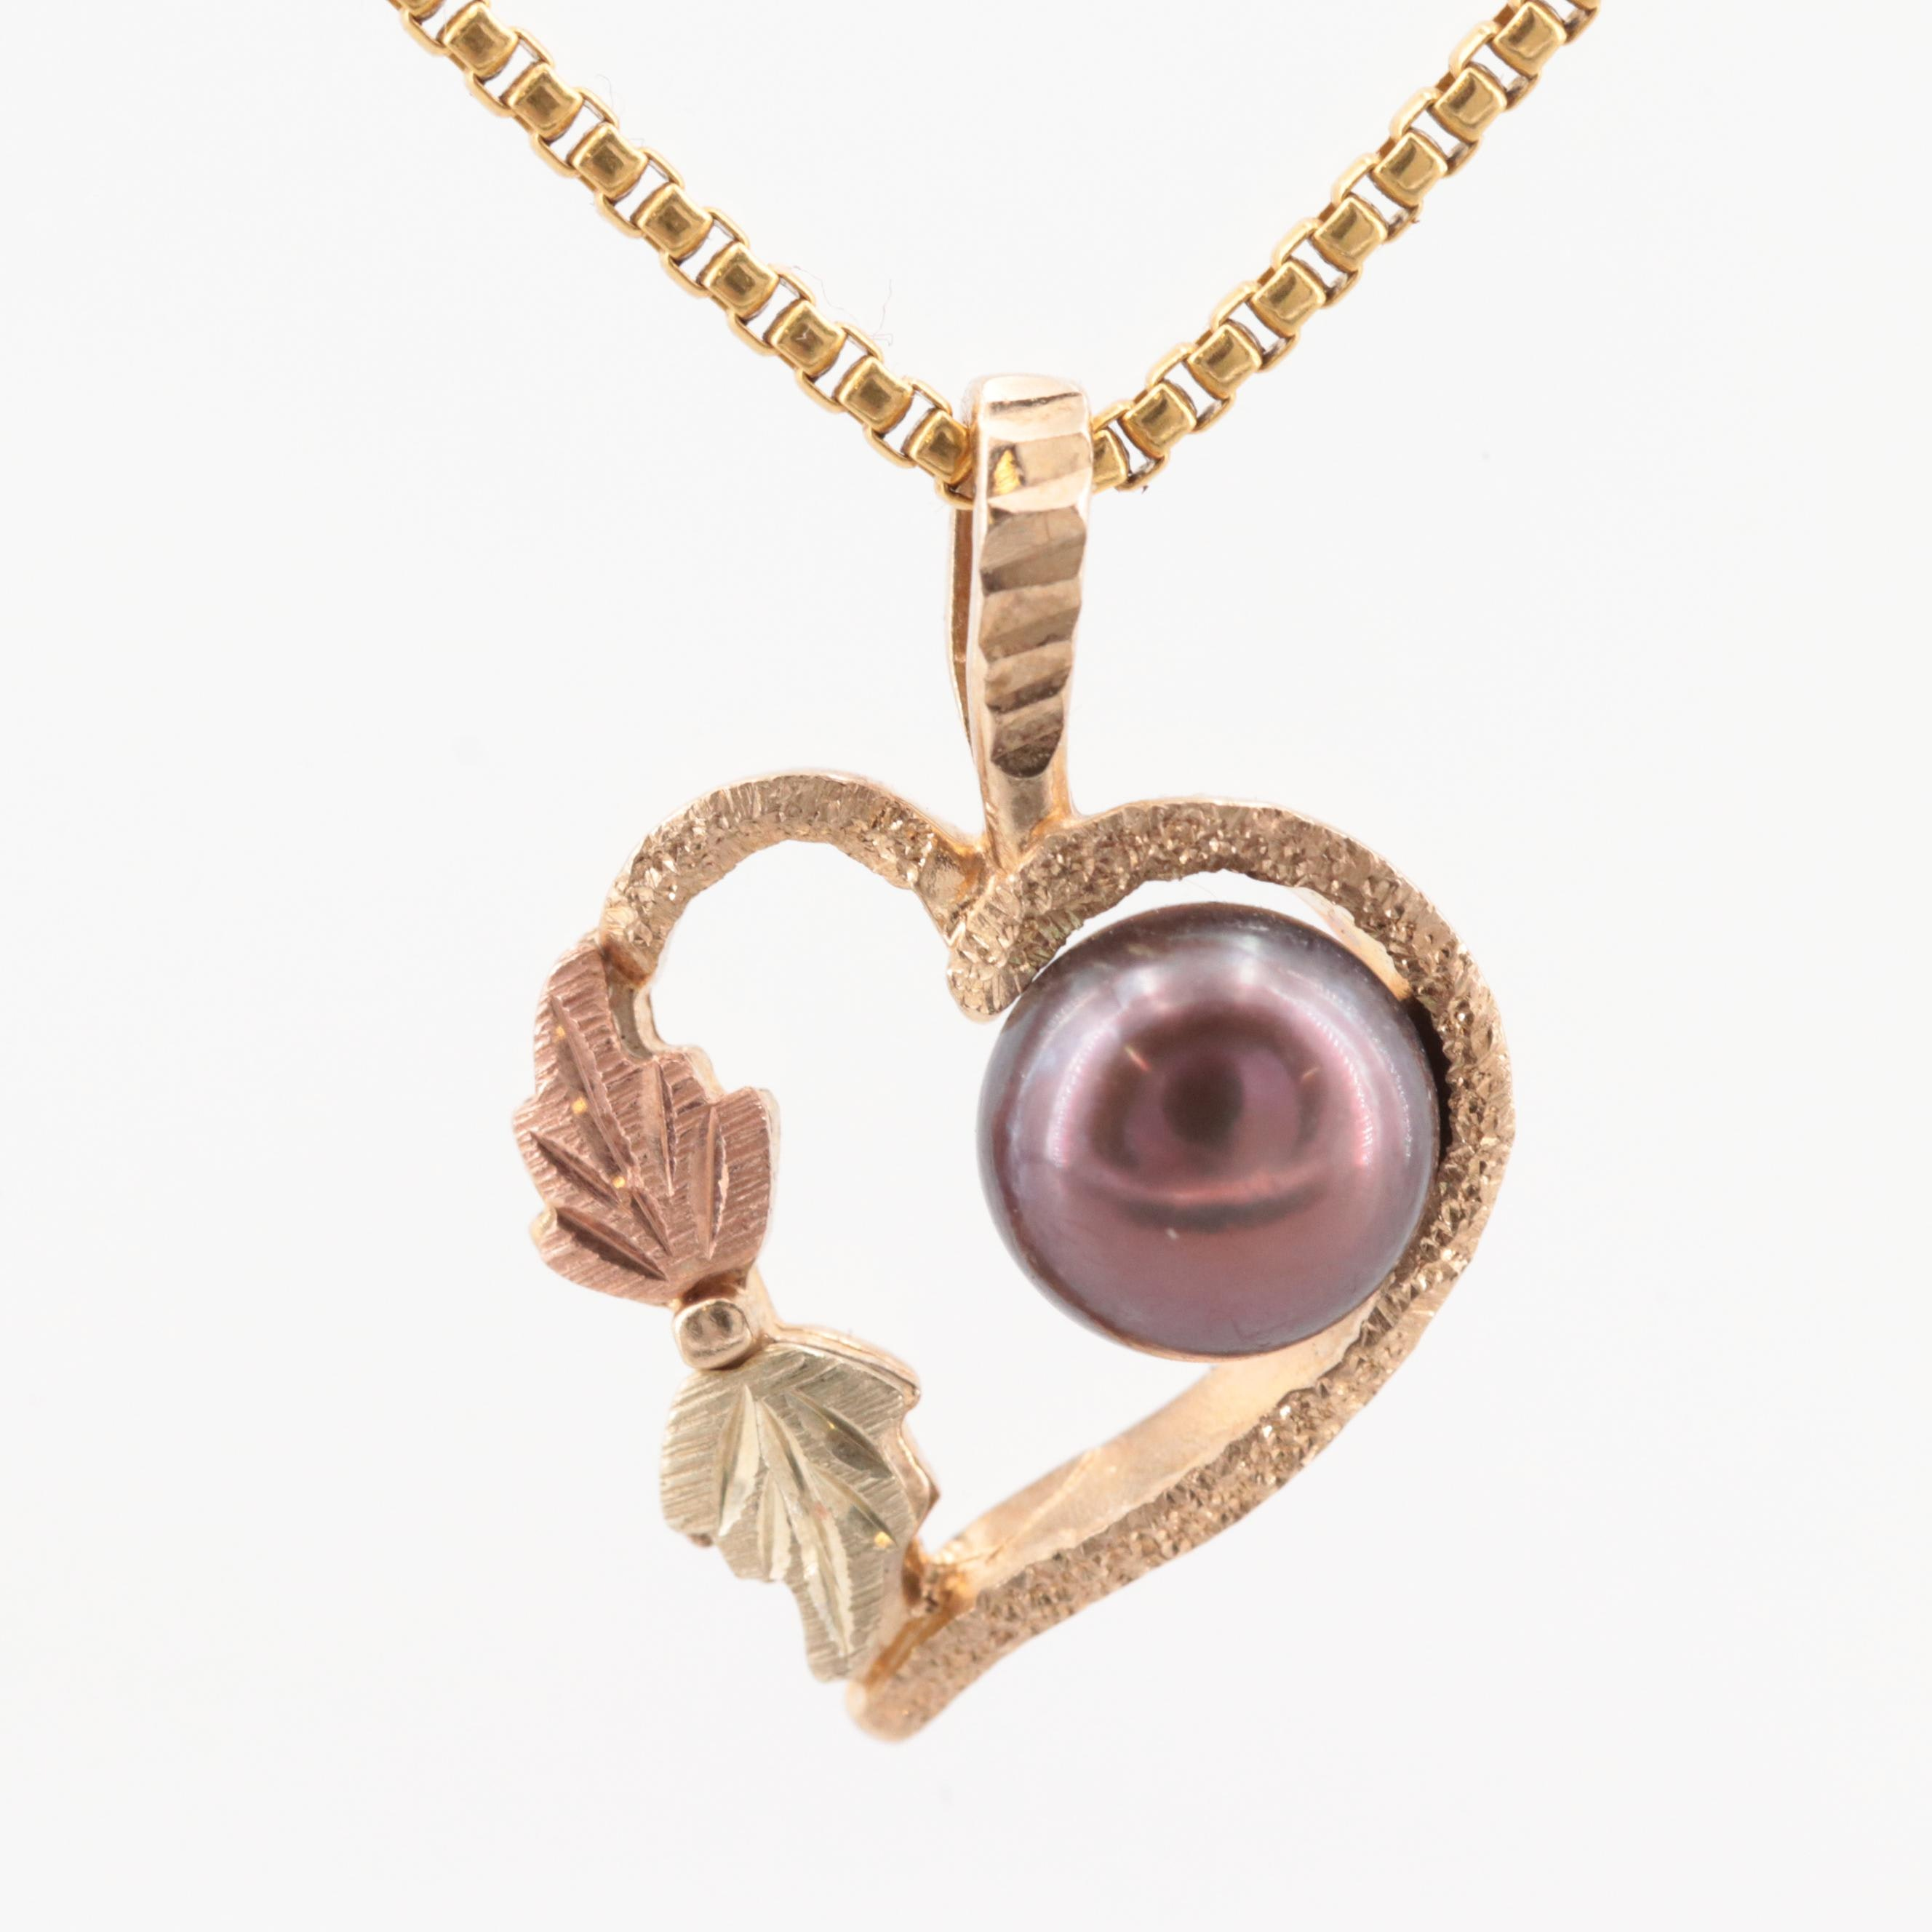 21K Yellow Gold Necklace with 10K Yellow Gold Cultured Pearl Heart Pendant